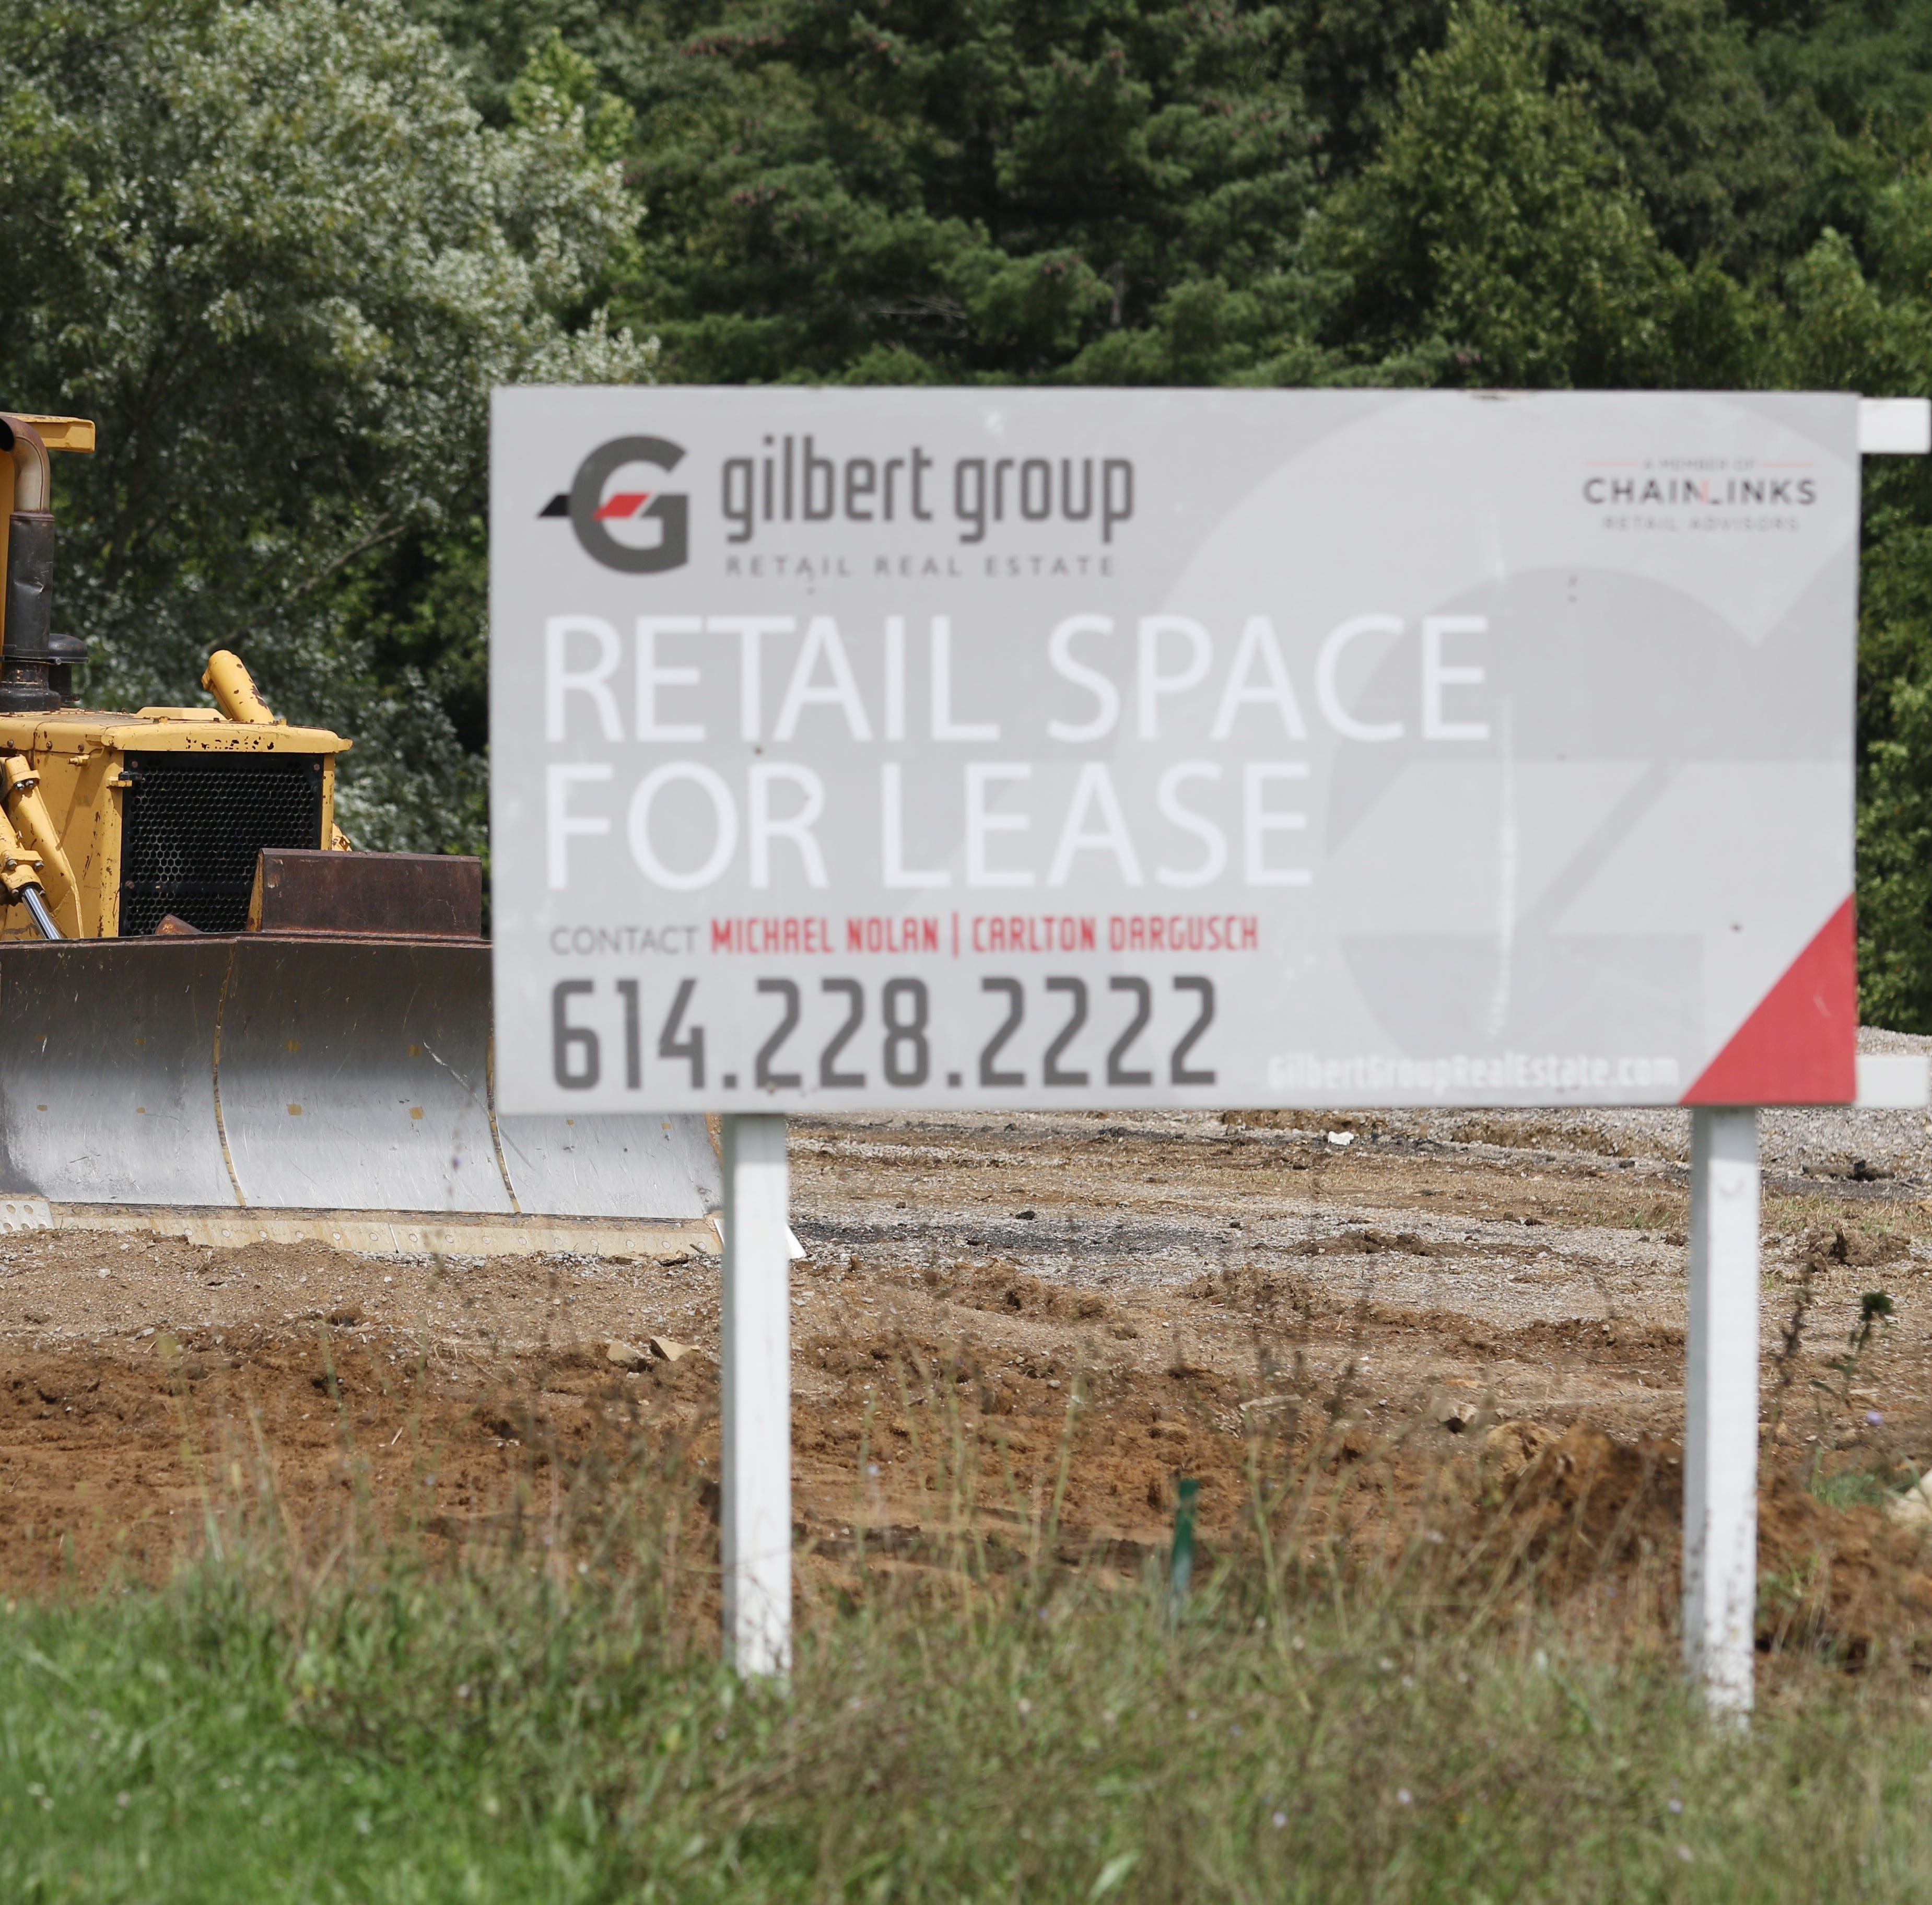 Construction on Frazeysburg Road likely retail stores